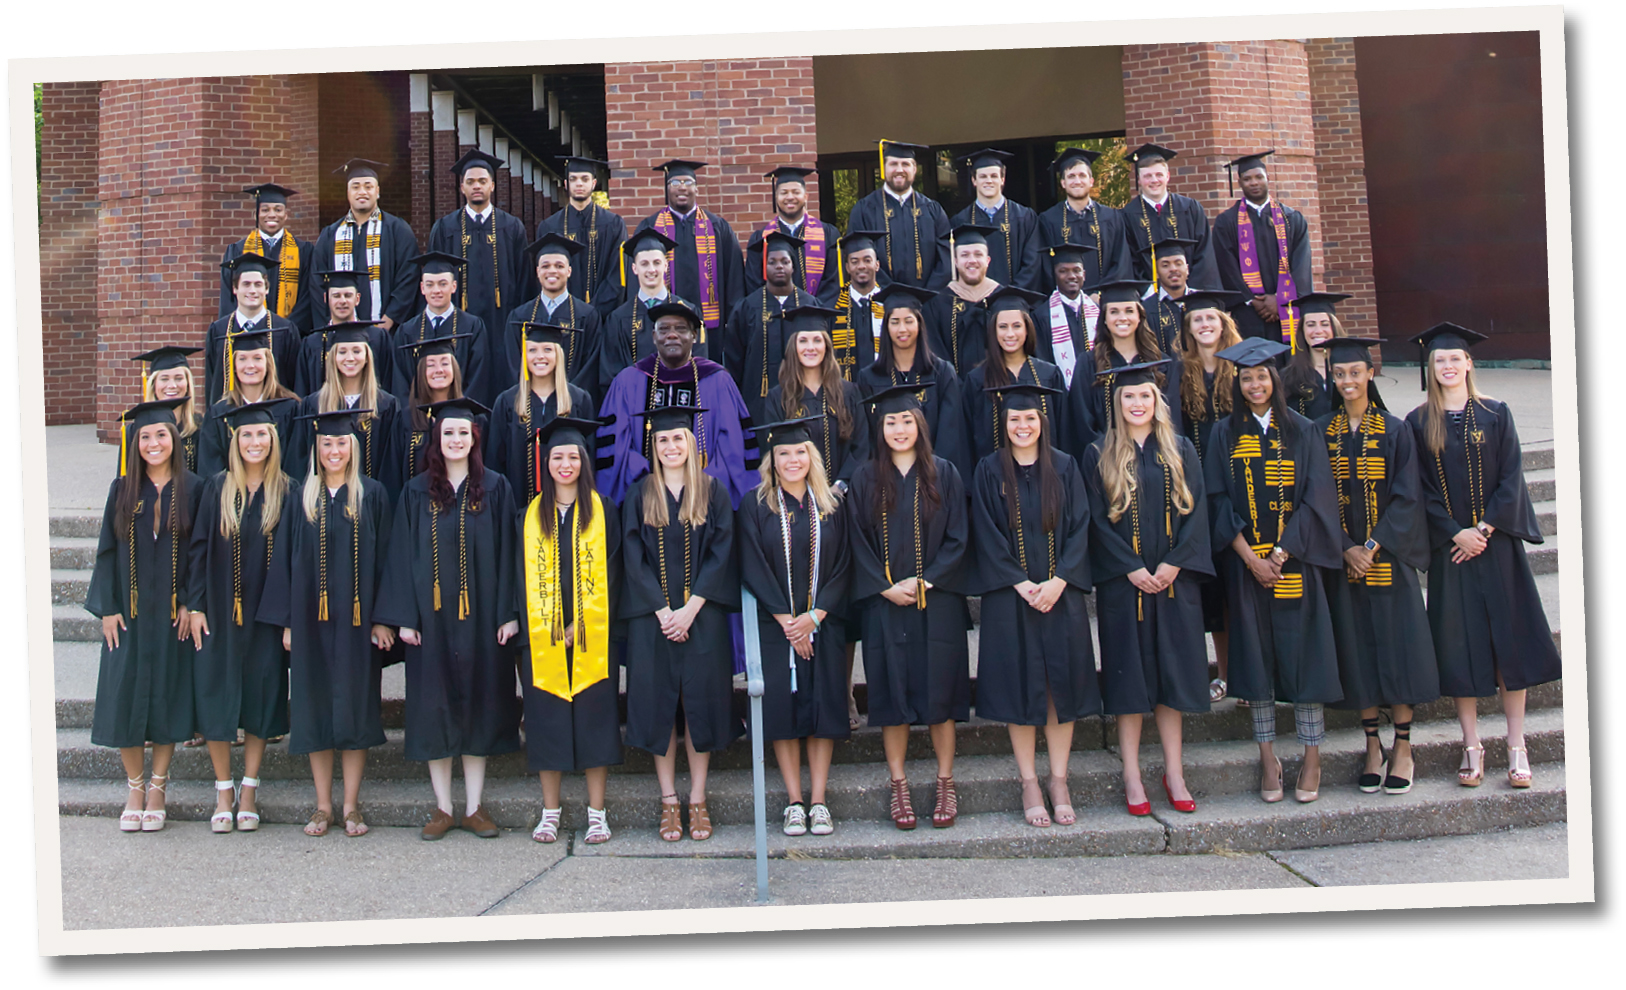 photo of members of the May 2018 graduating class of student-athletes